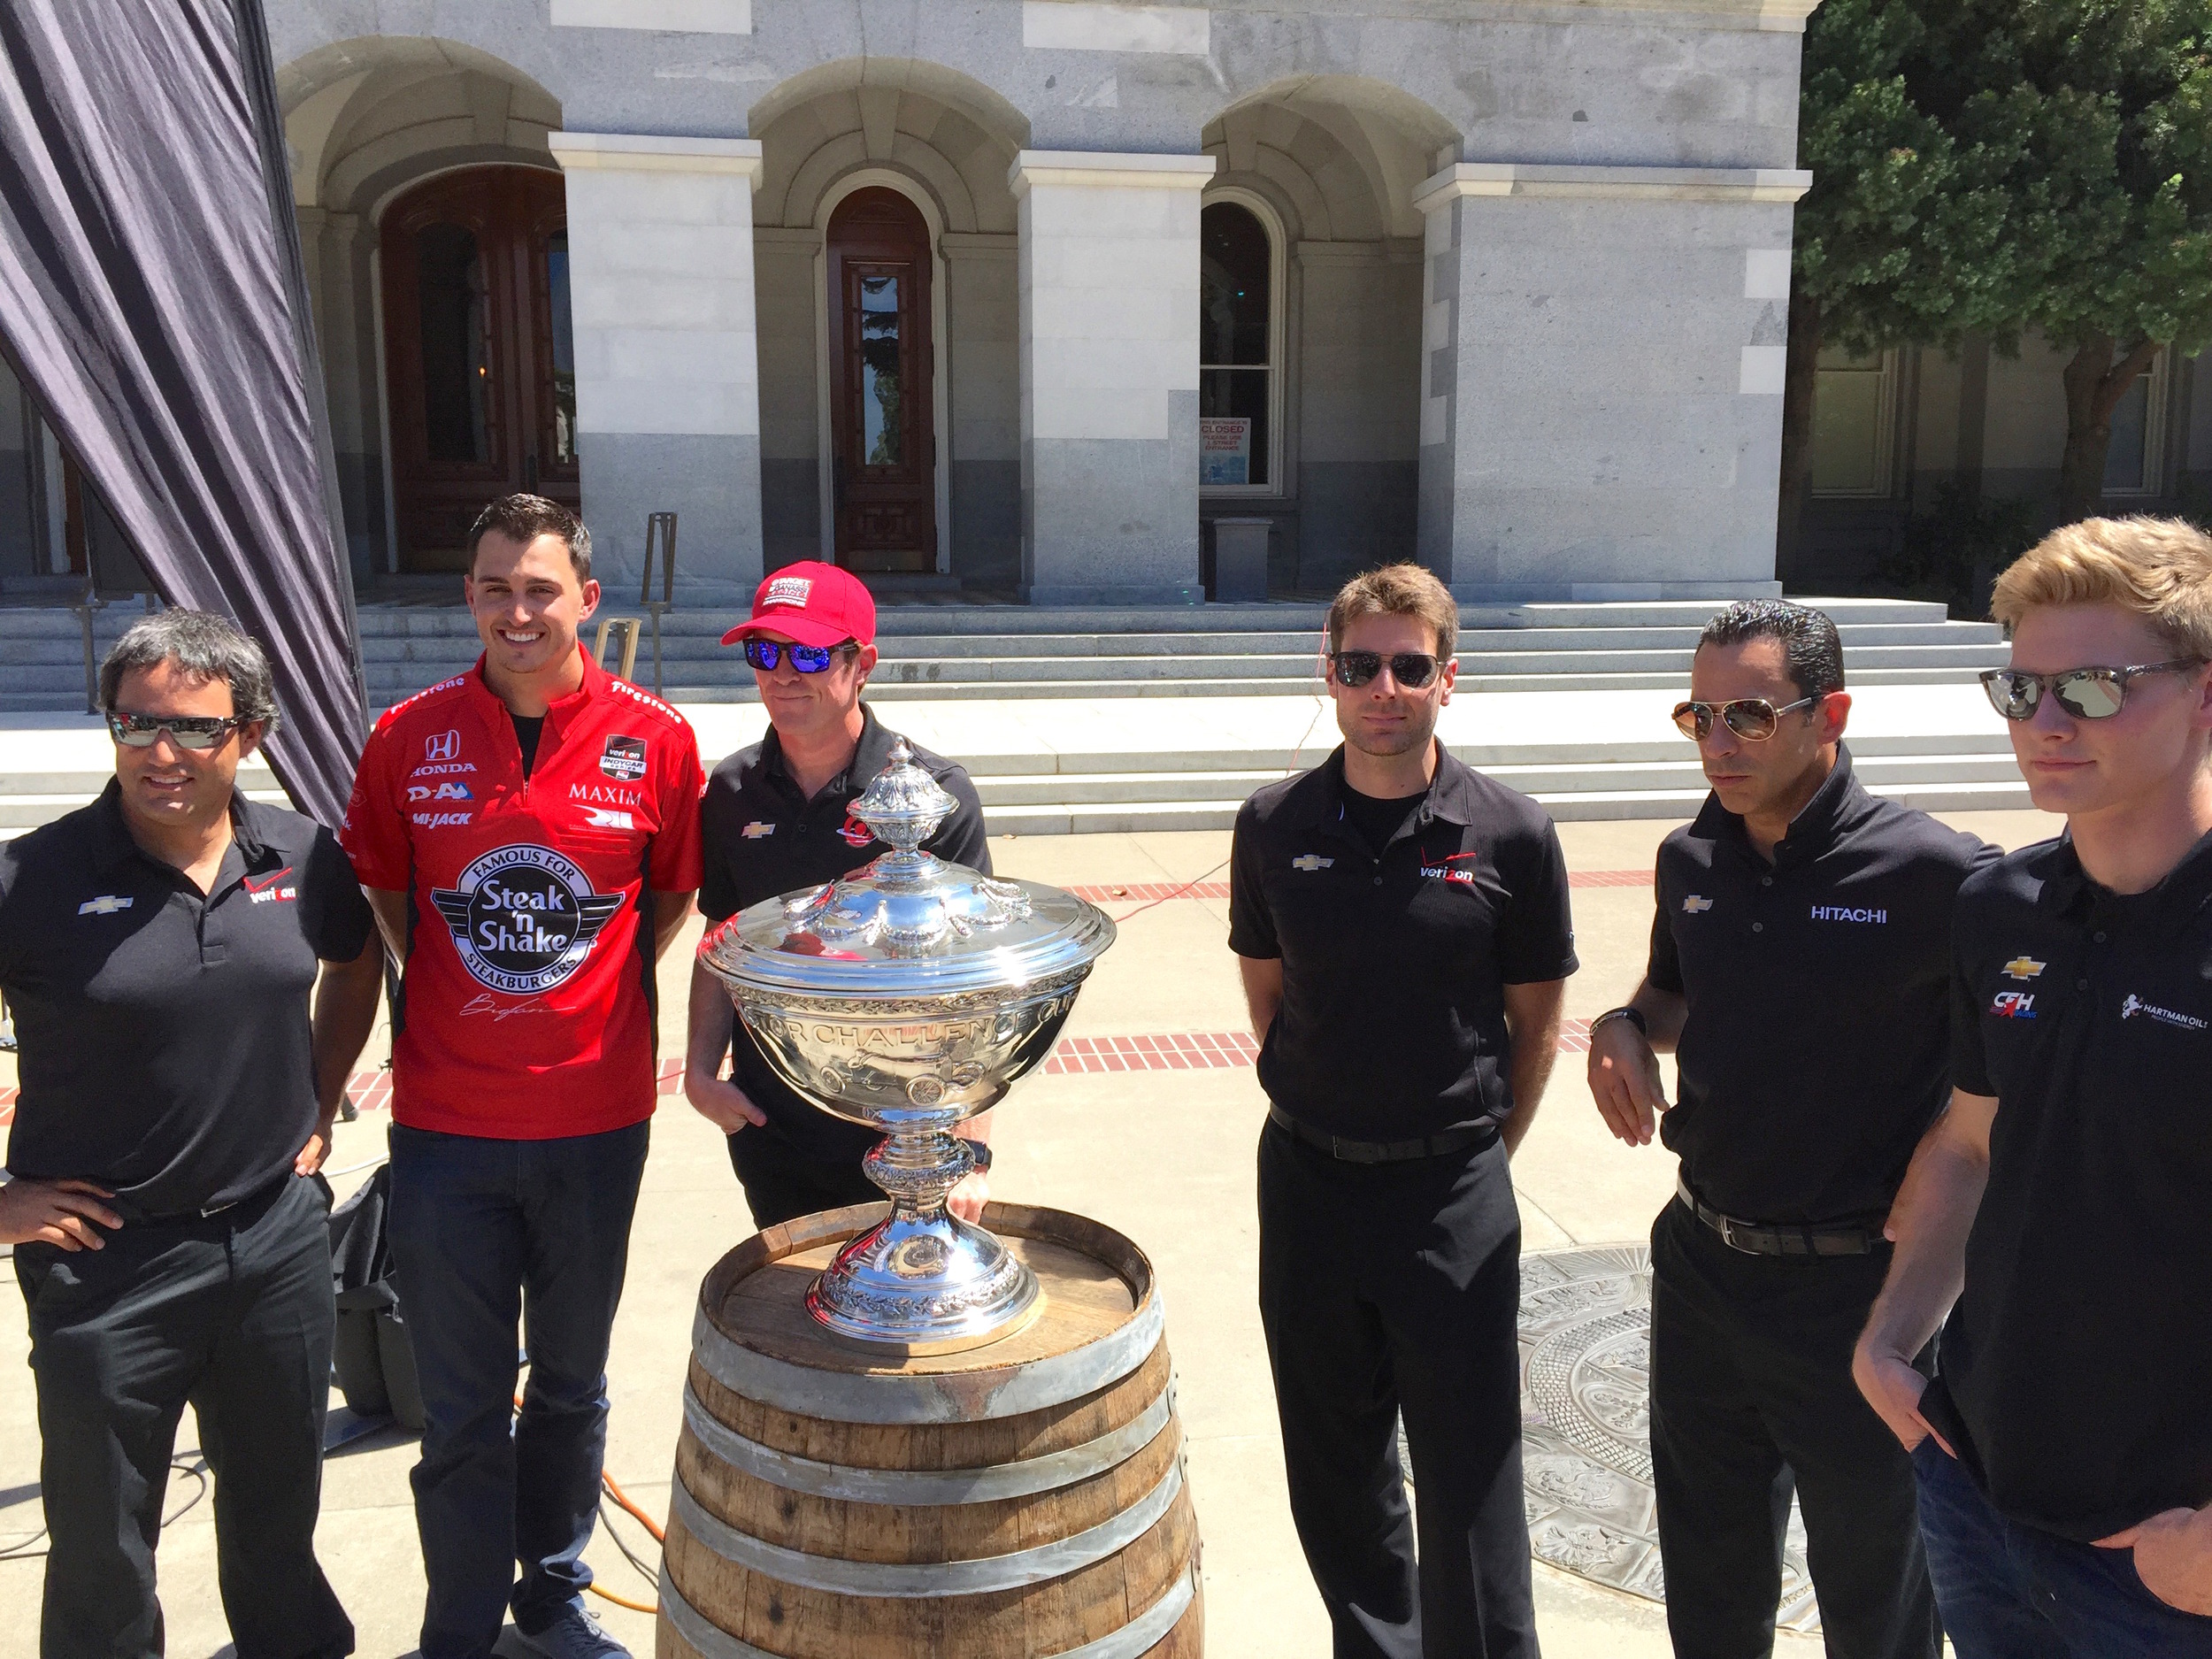 (From Left To Right) Juan Pablo Montoya, Graham Rahal, Scott Dixon, Will Power, Helio Castroneves, and Josef Newgarden stand behind the IndyCar Championship Trophy.